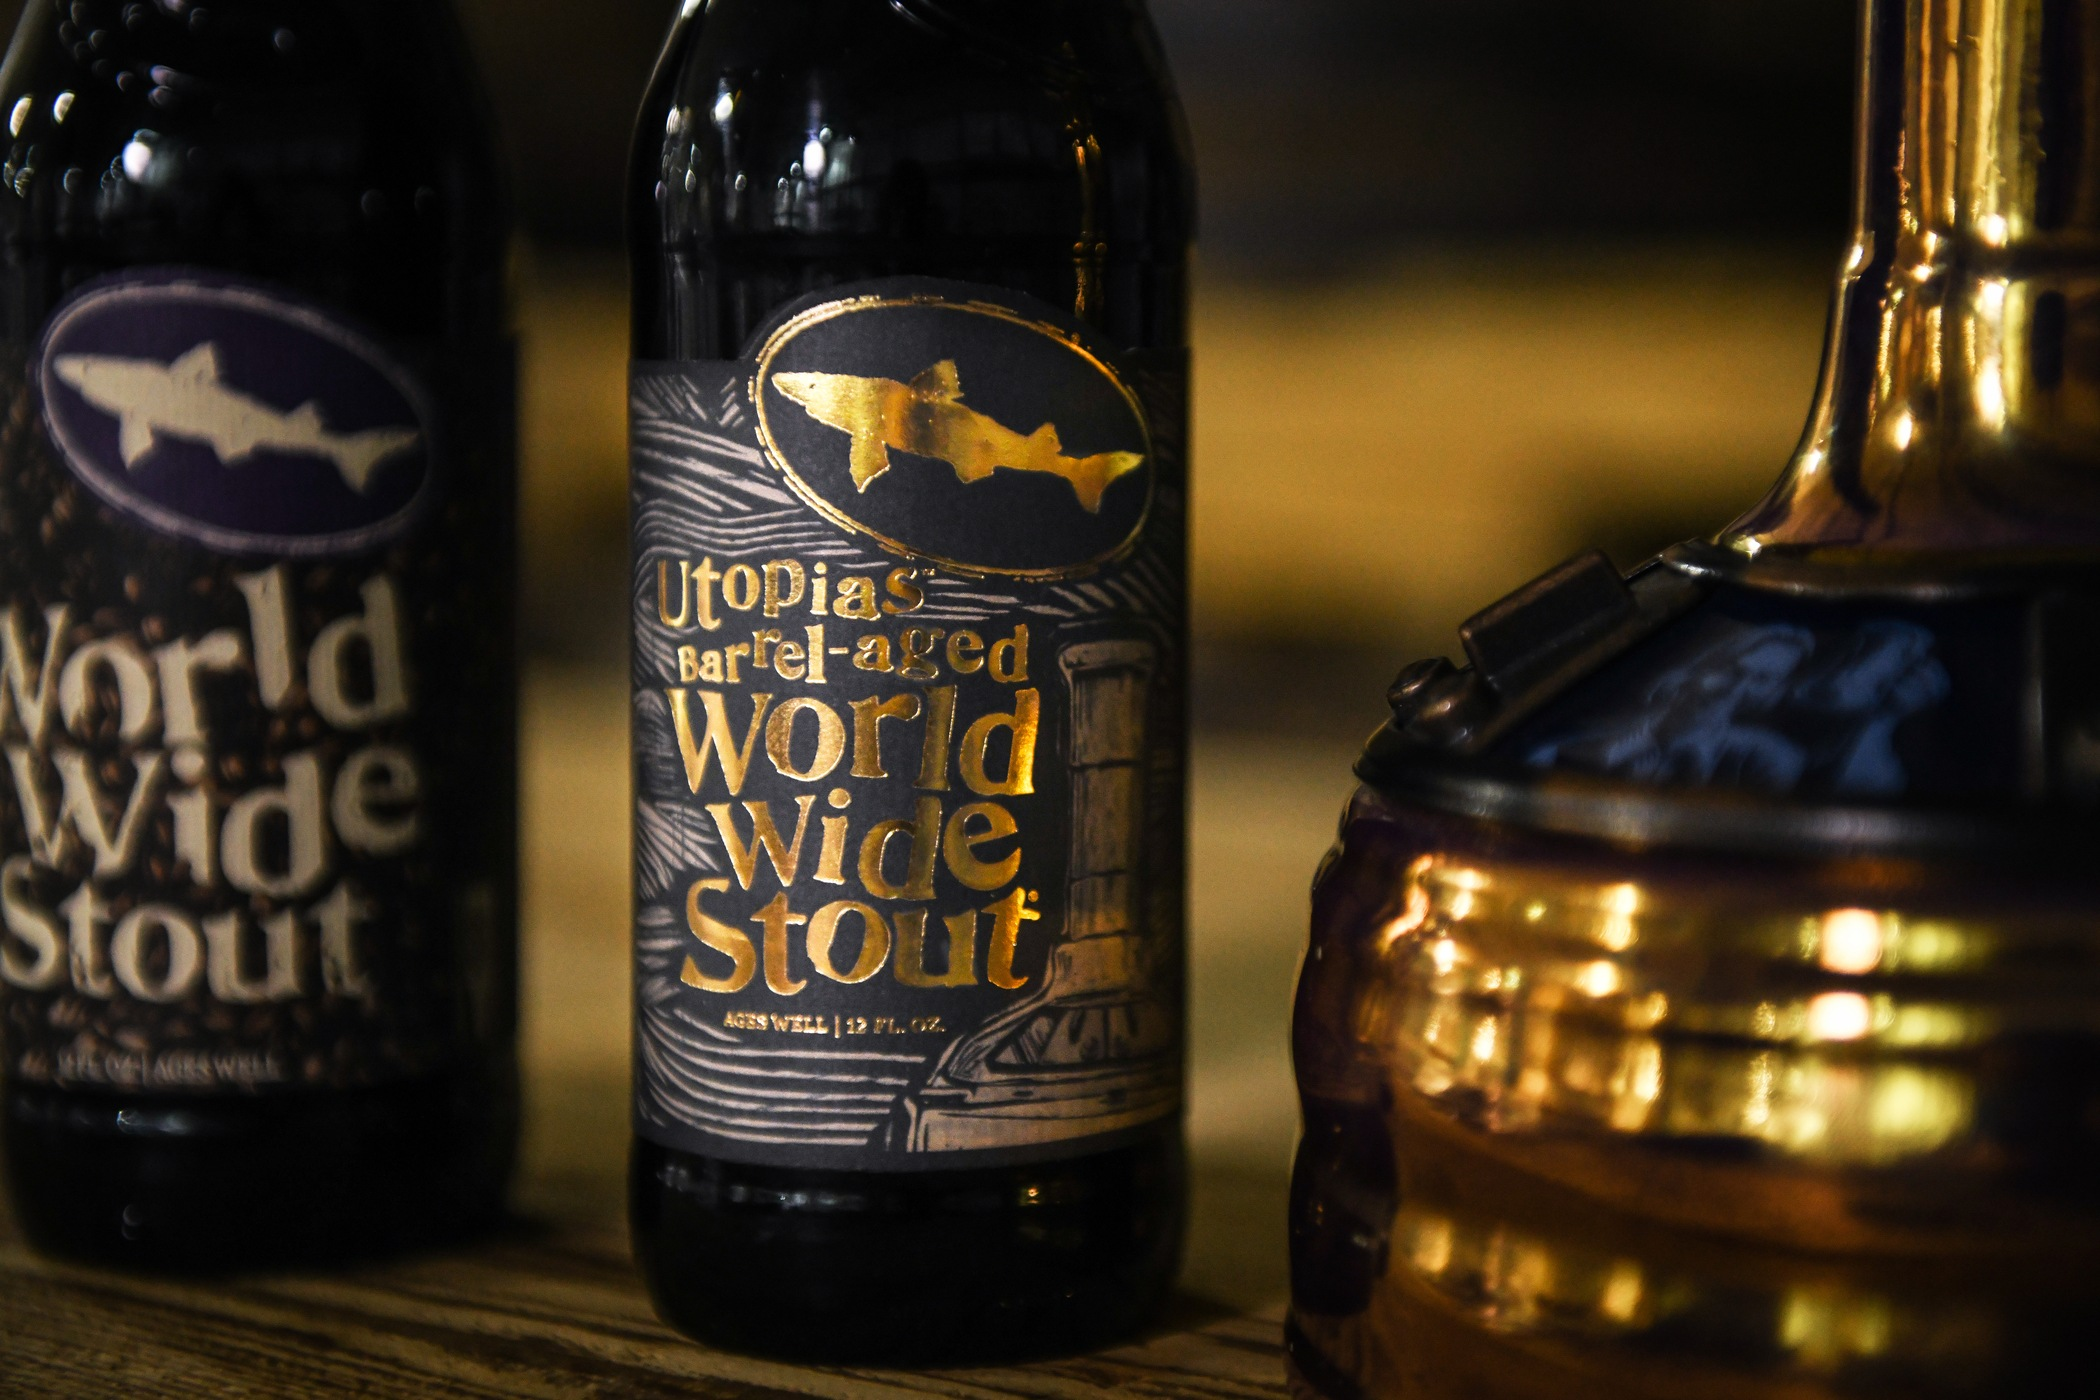 Dogfish Head Releases Utopias Barrel-Aged World Wide Stout